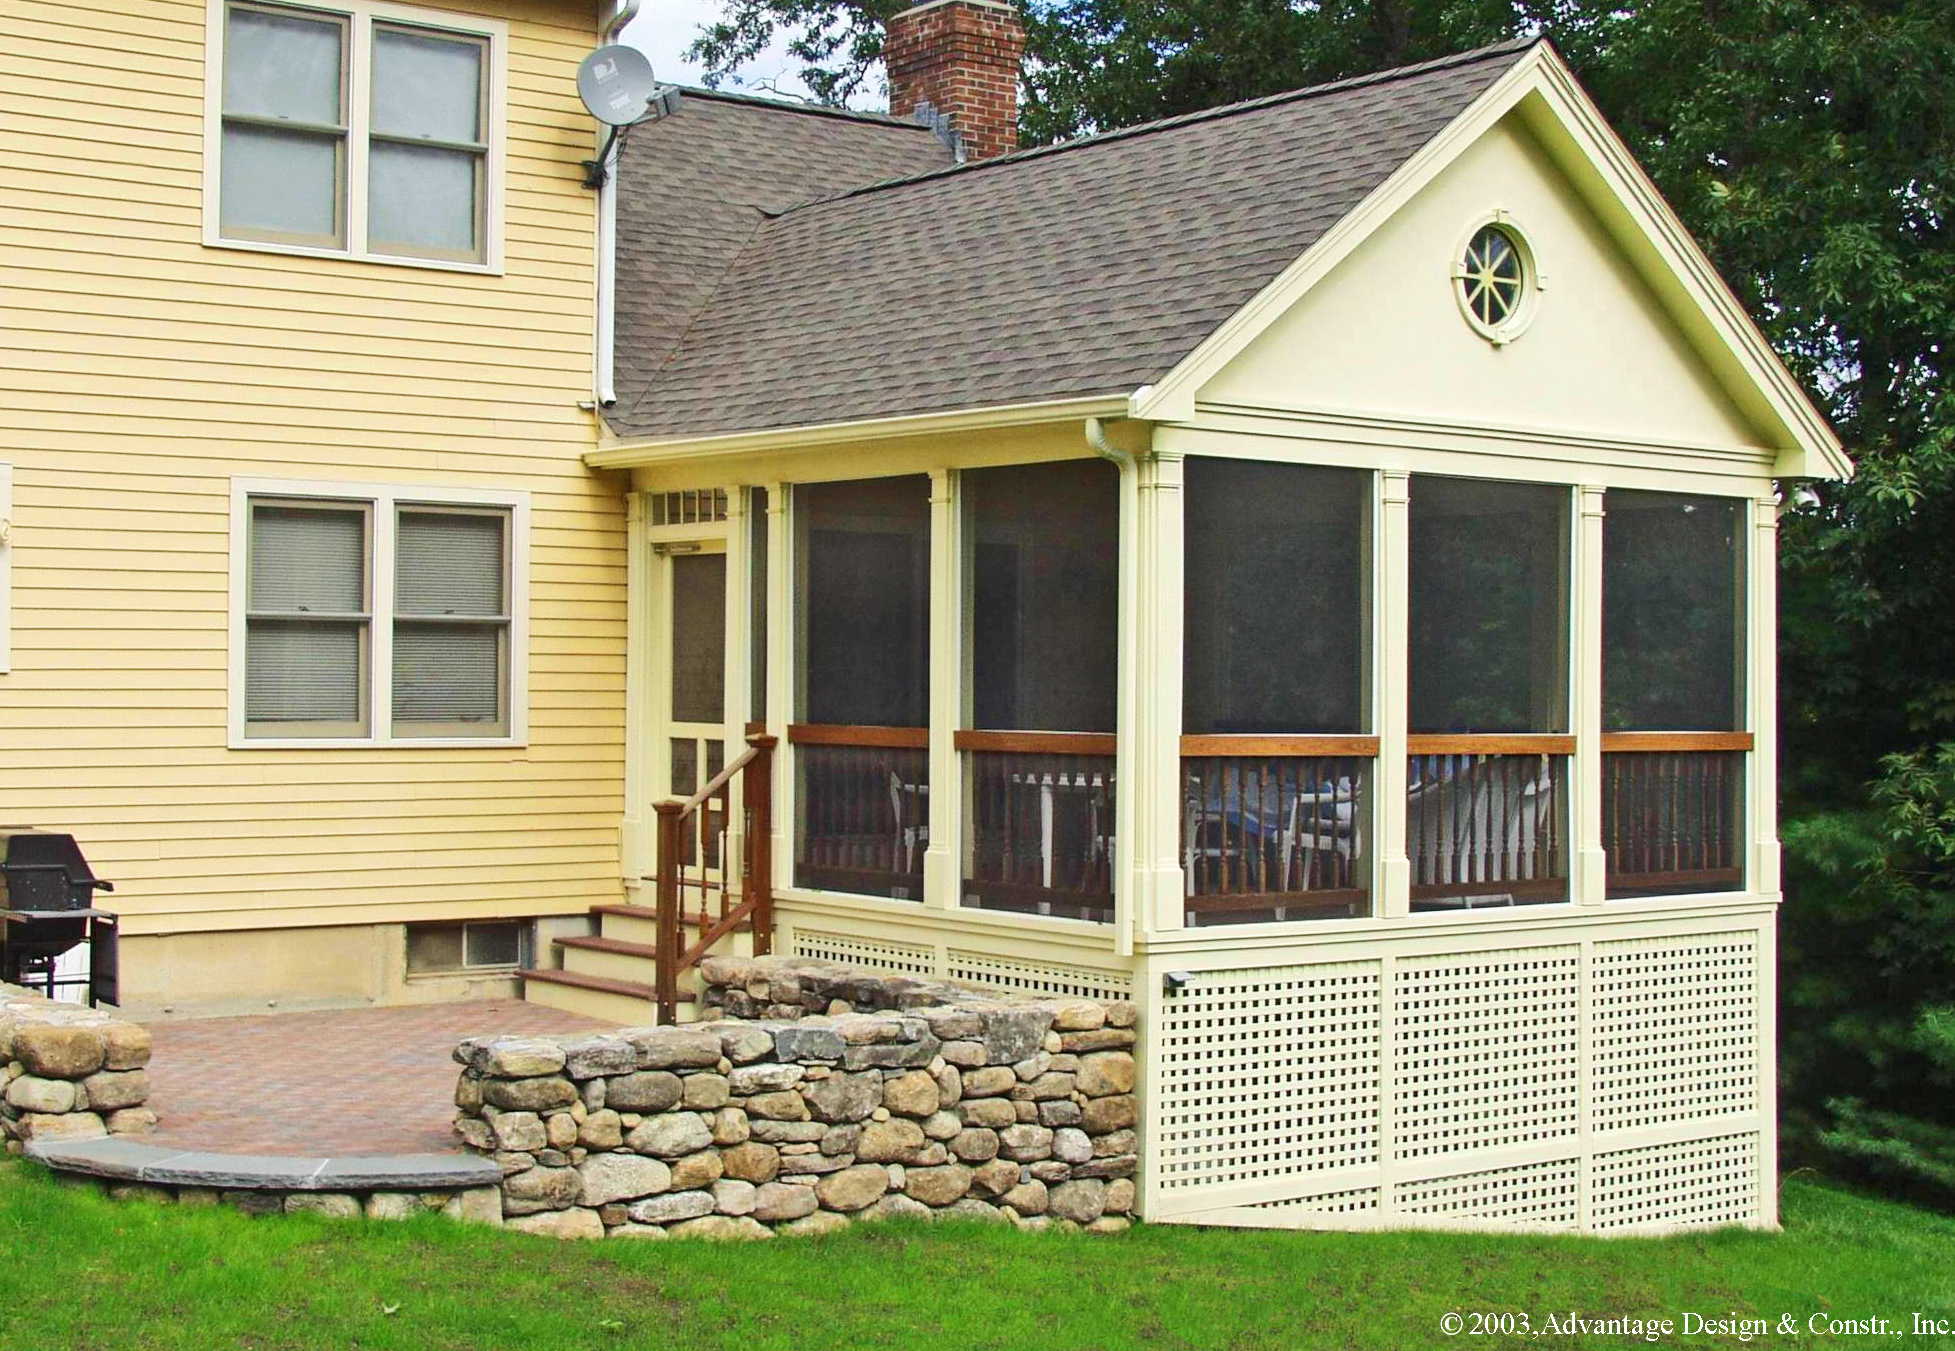 Want to convert your deck to a porch suburban boston decks and porches blog - Things consider installing balcony home ...